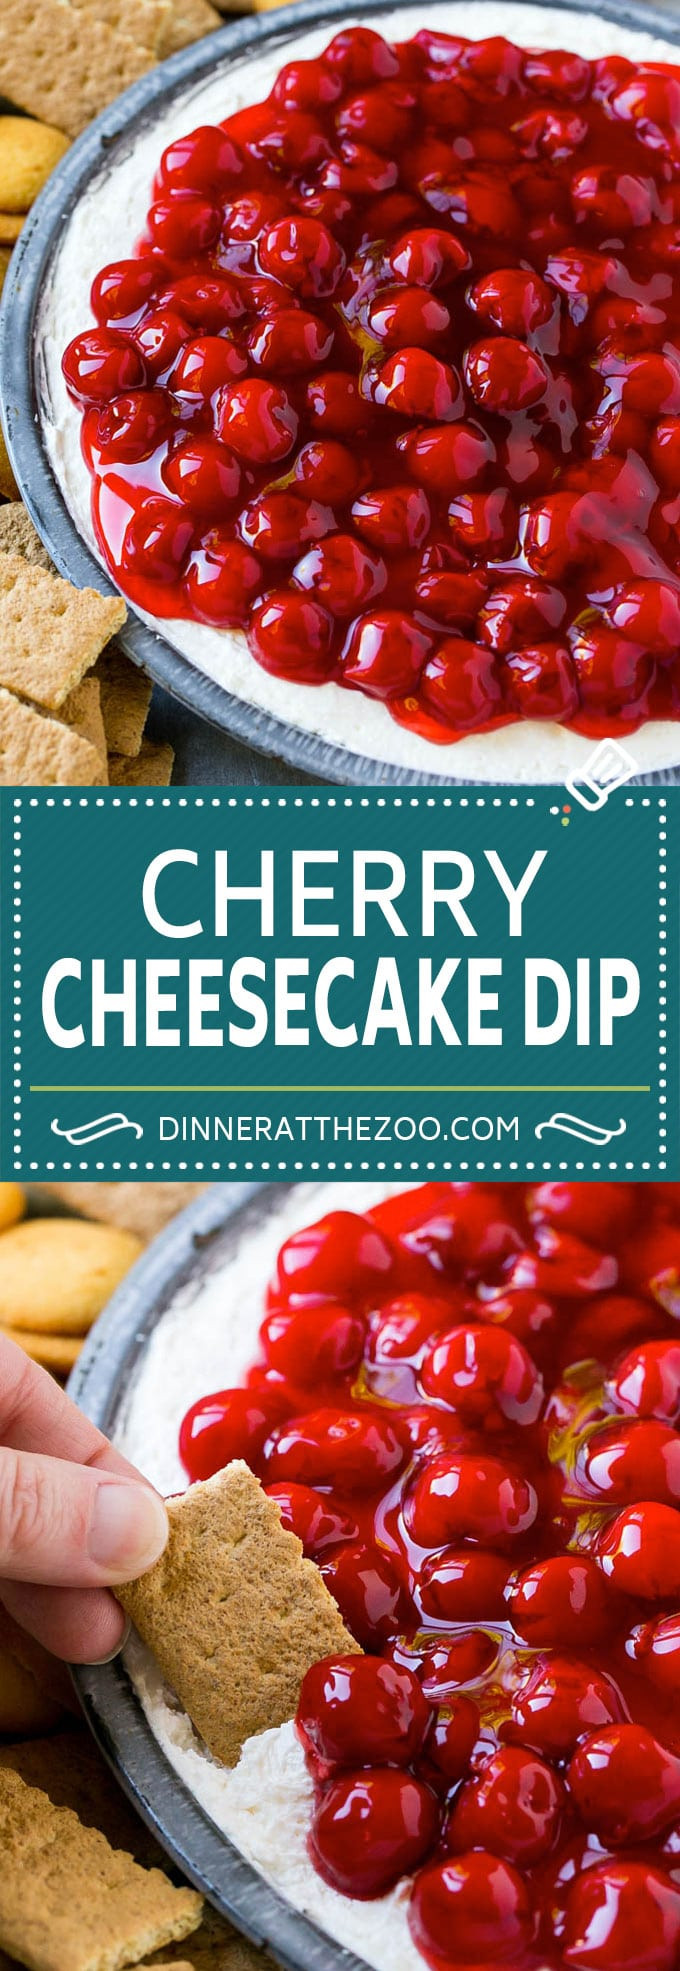 Cherry Cheesecake Dip Recipe | Dessert Dip | Cherry Cheesecake | Cheesecake Dip #cheesecake #cherry #dessert #cheesecakedip #dinneratthezoo